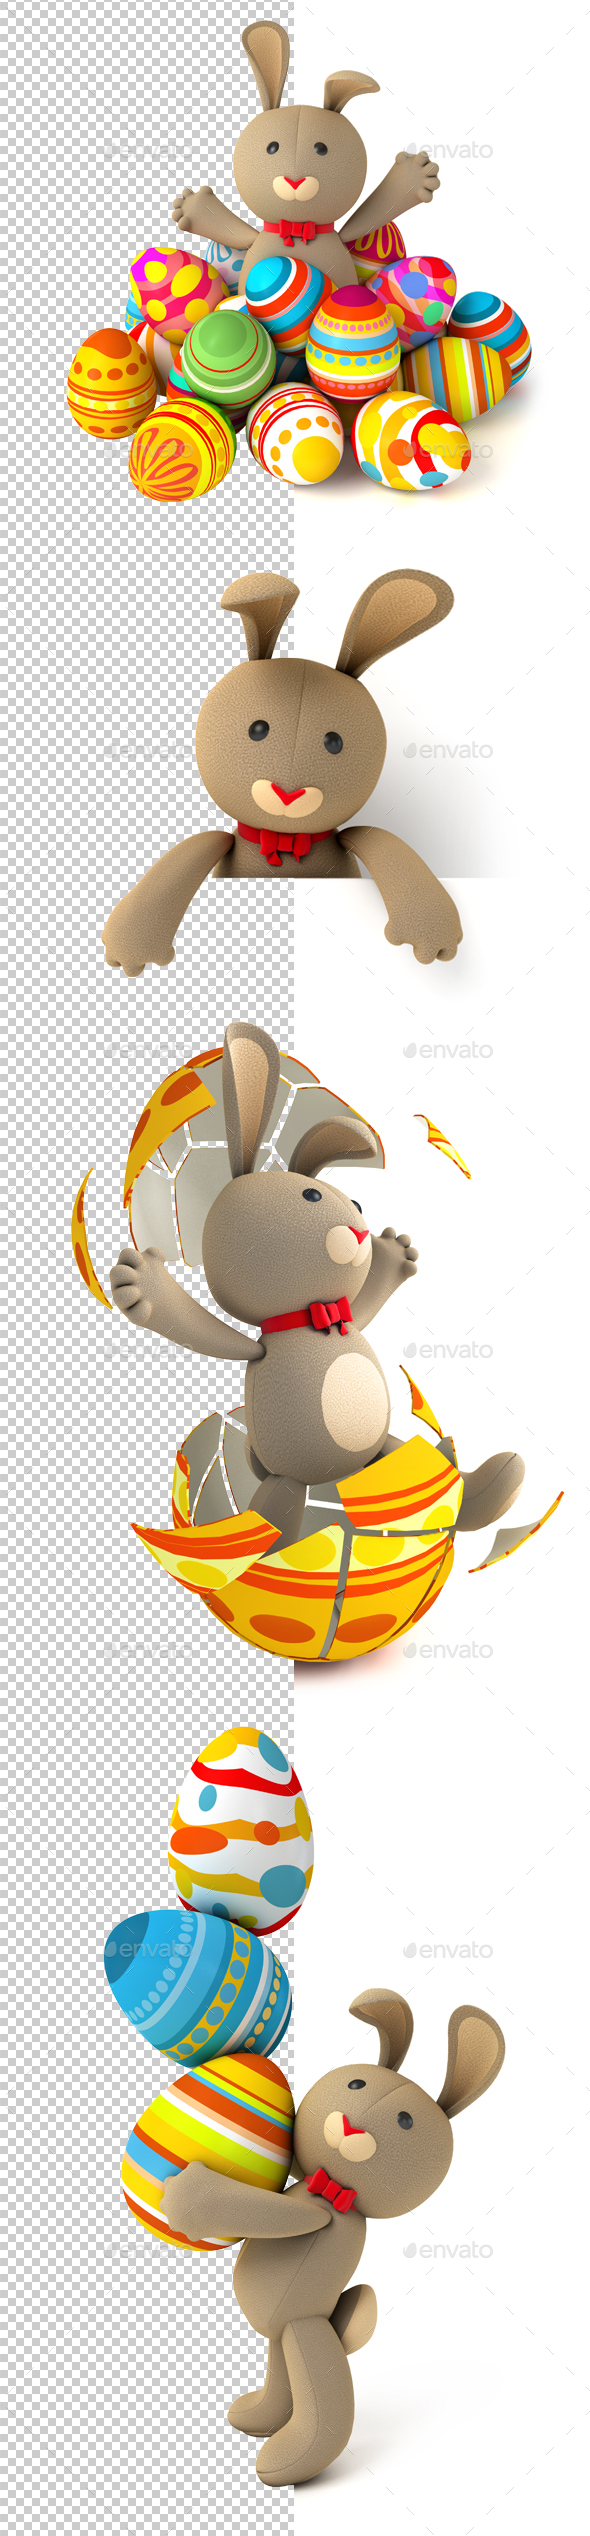 Easter Bunny - Characters 3D Renders